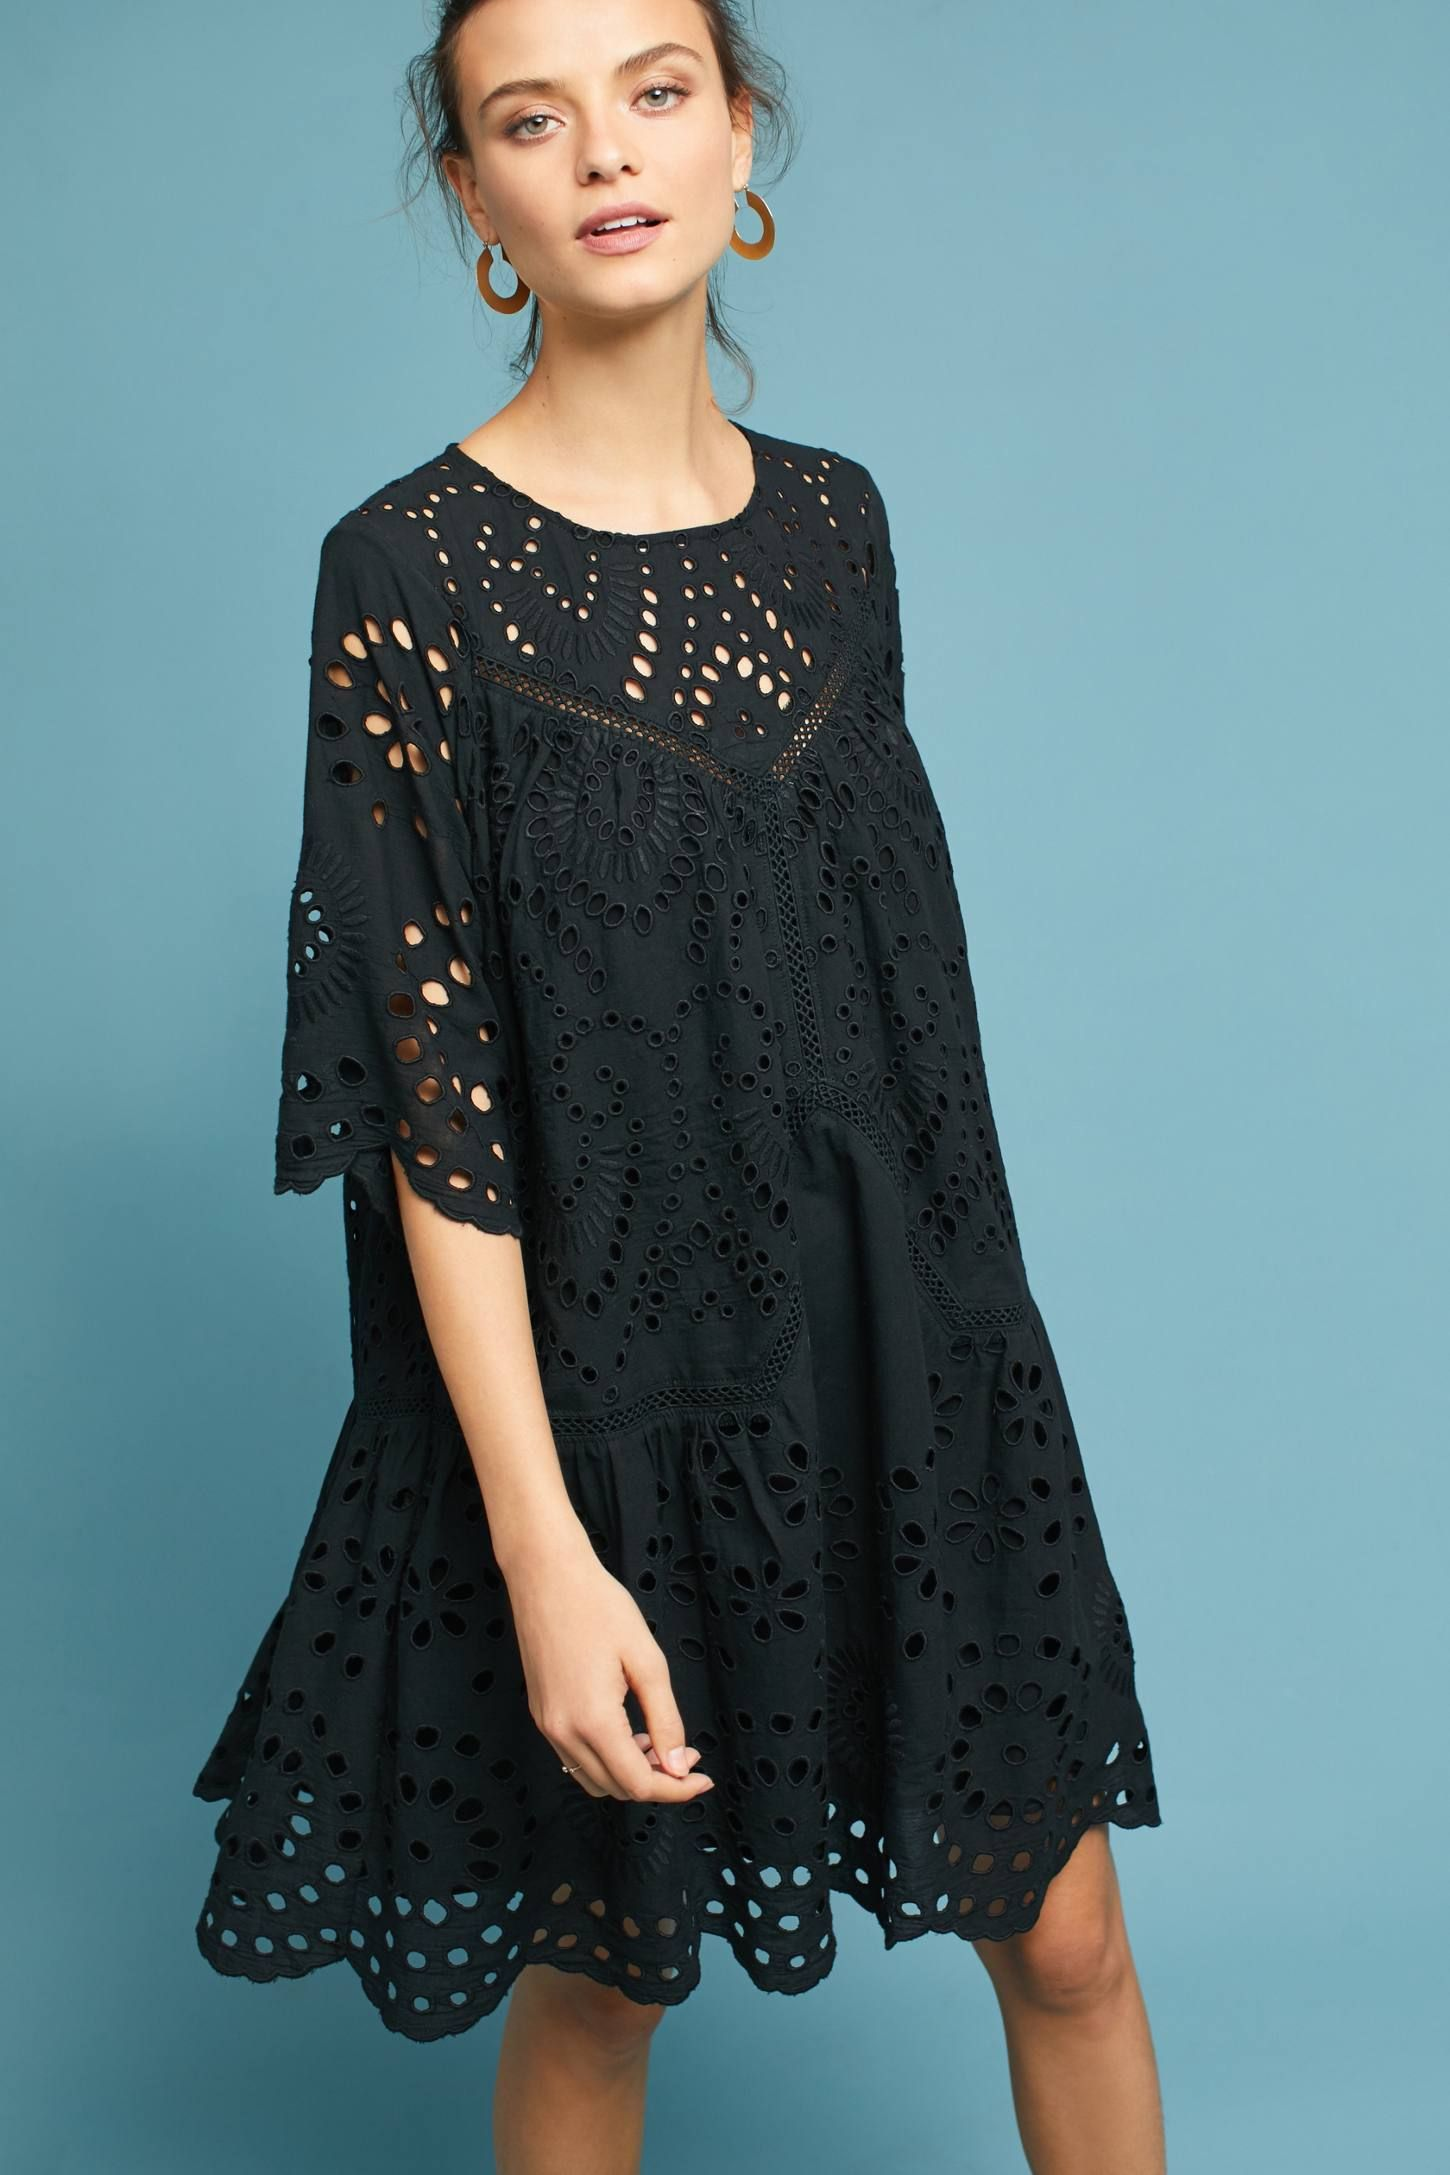 67a8b3a576473 Shop the Martella Eyelet Dress and more Anthropologie at Anthropologie  today. Read customer reviews,